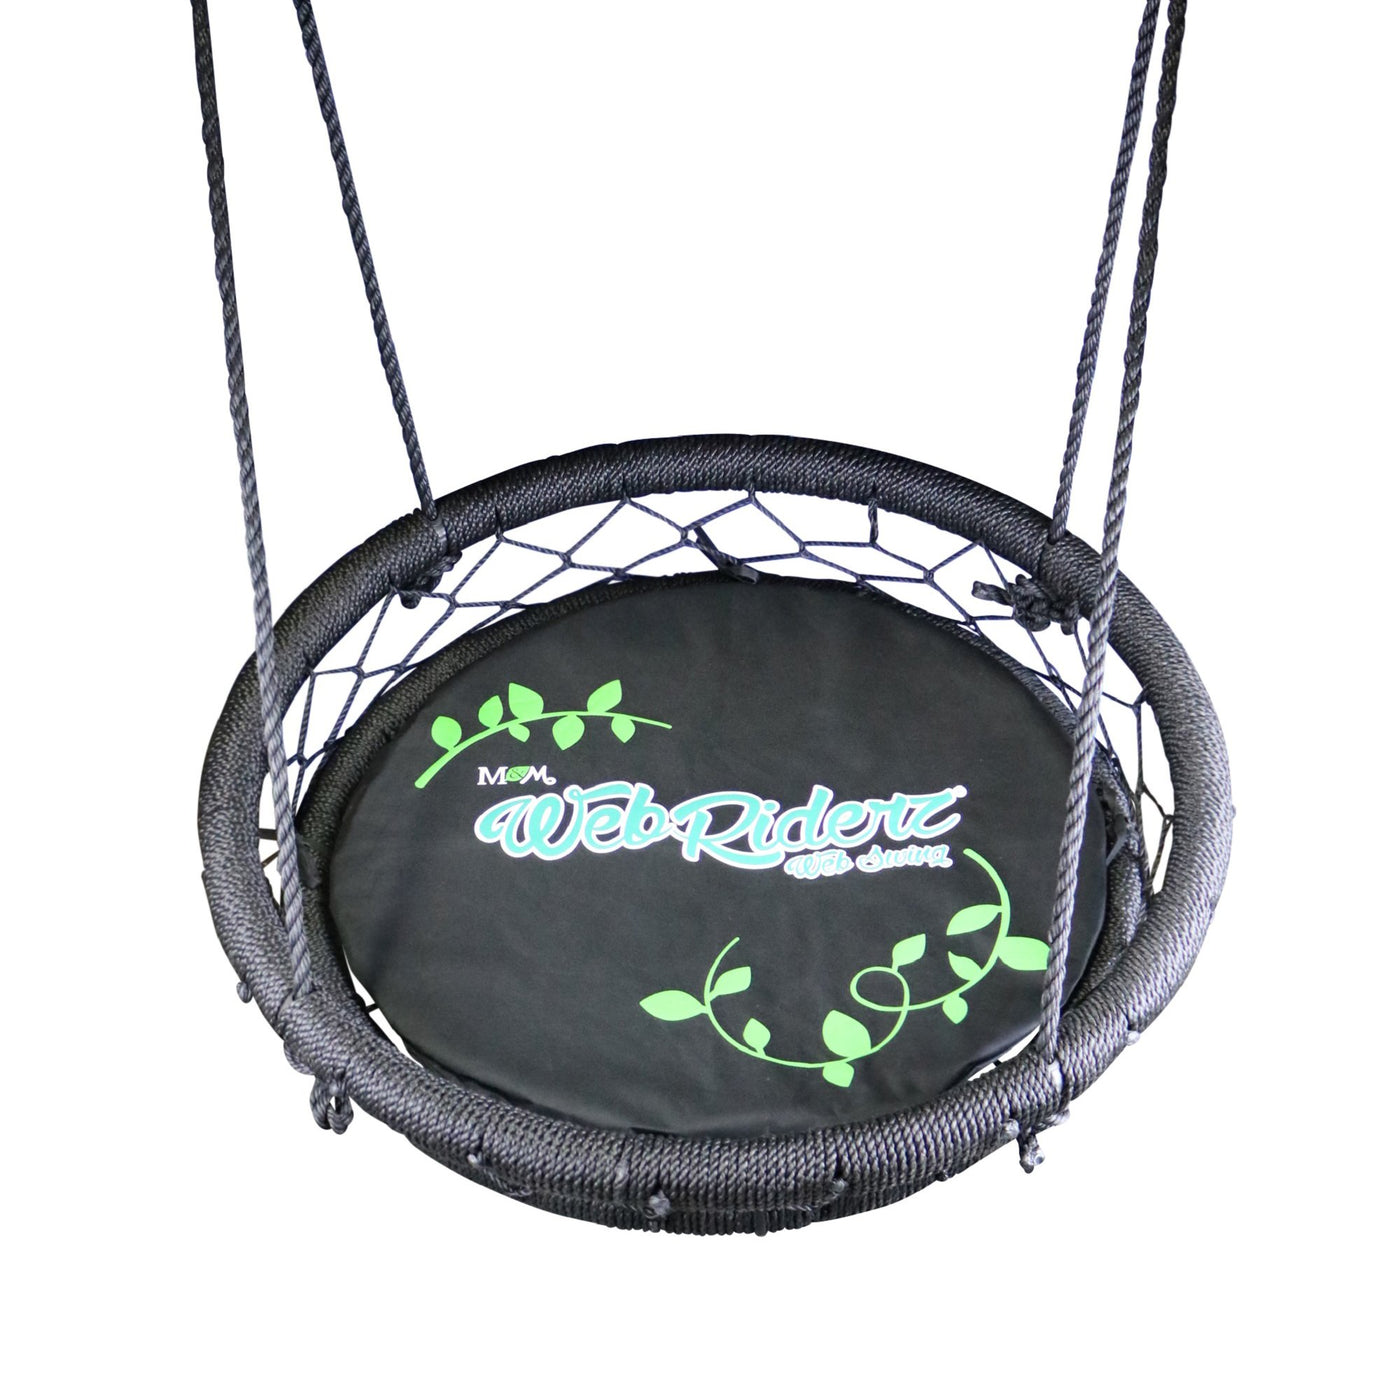 Web Riderz Basket Swing